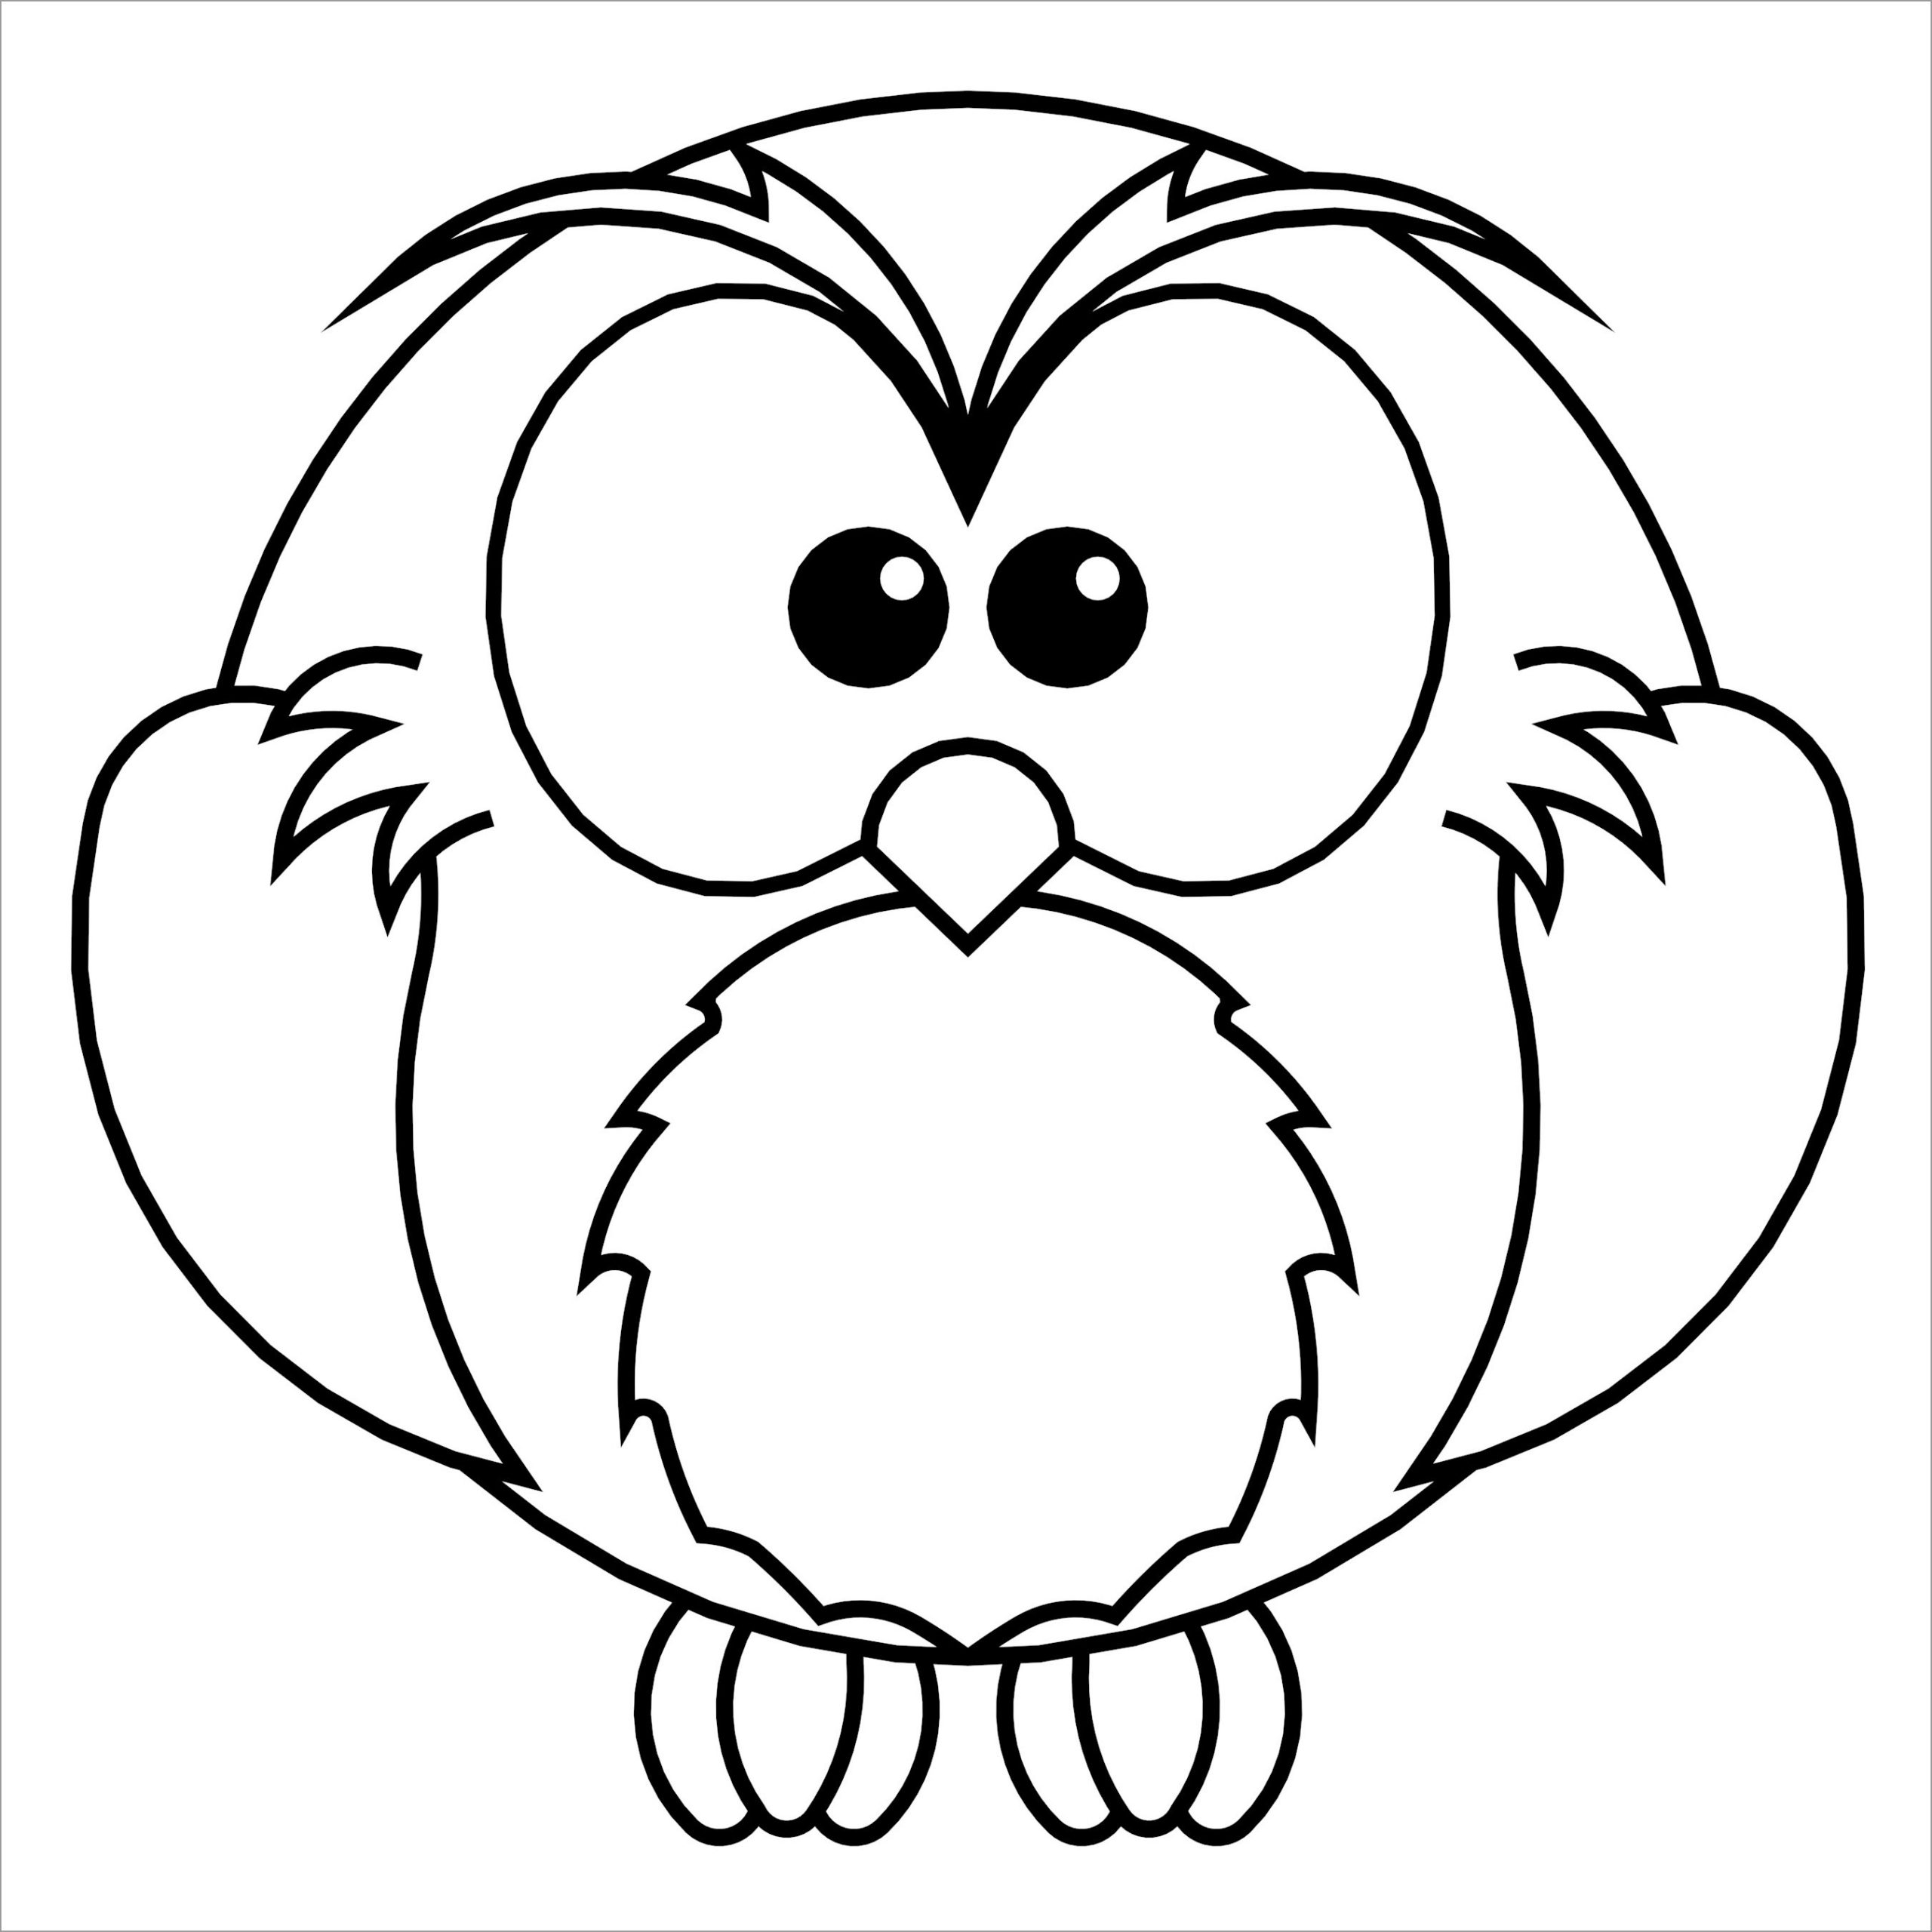 owl colouring owl coloring pages for adults free detailed owl coloring colouring owl 1 2